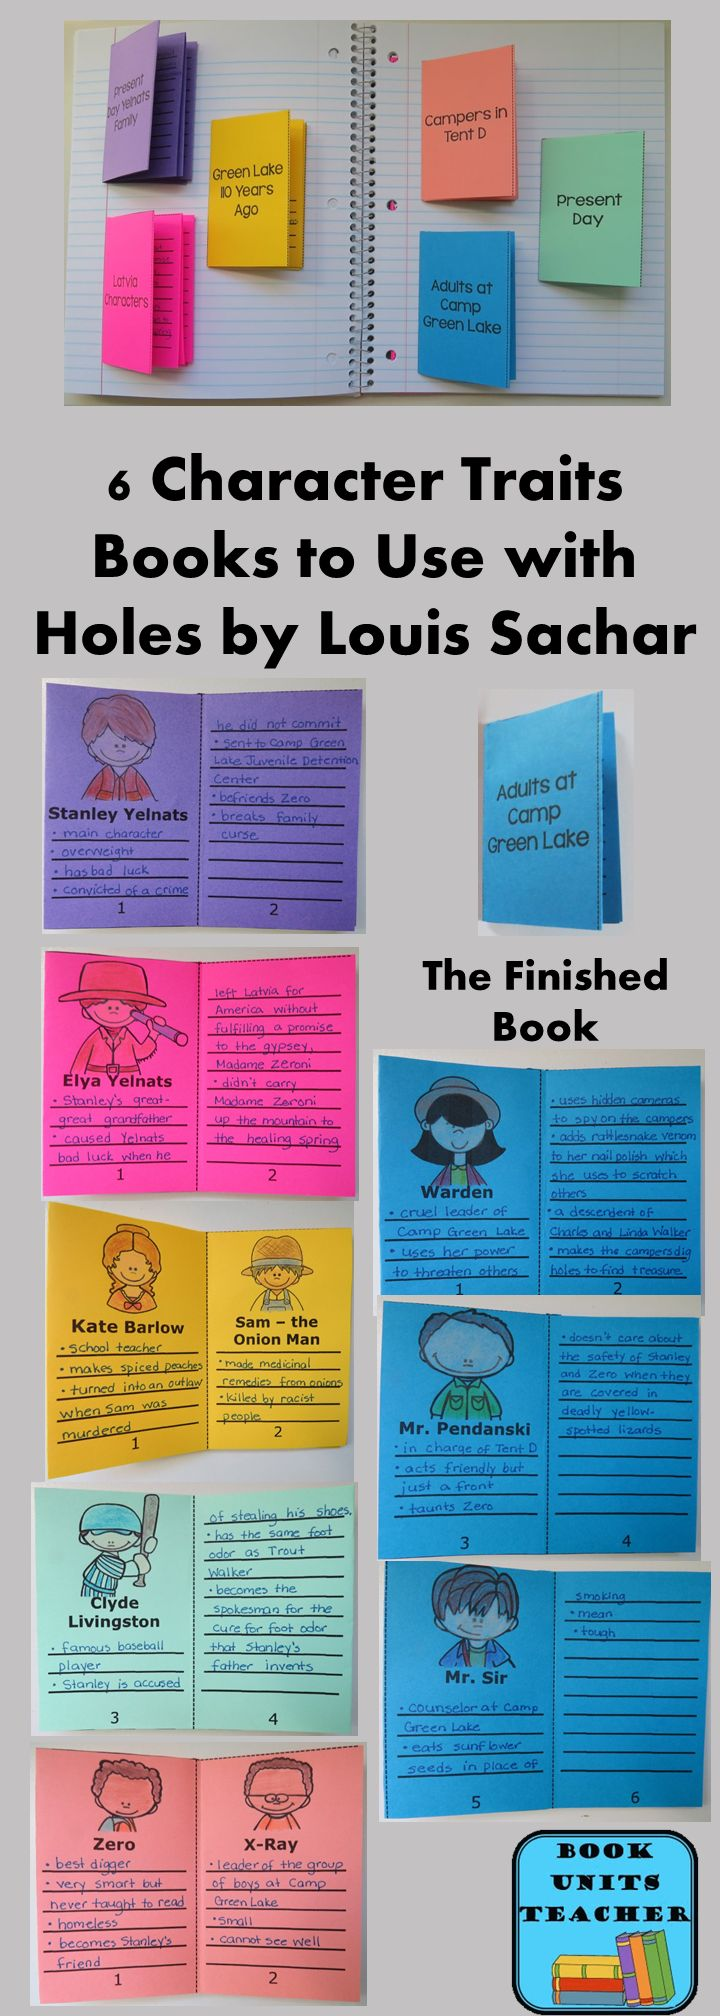 best ideas about louis sachar holes book finished books contain 6 pages where students can list character traits for the main characters this is a valuable tool for a book such as holes